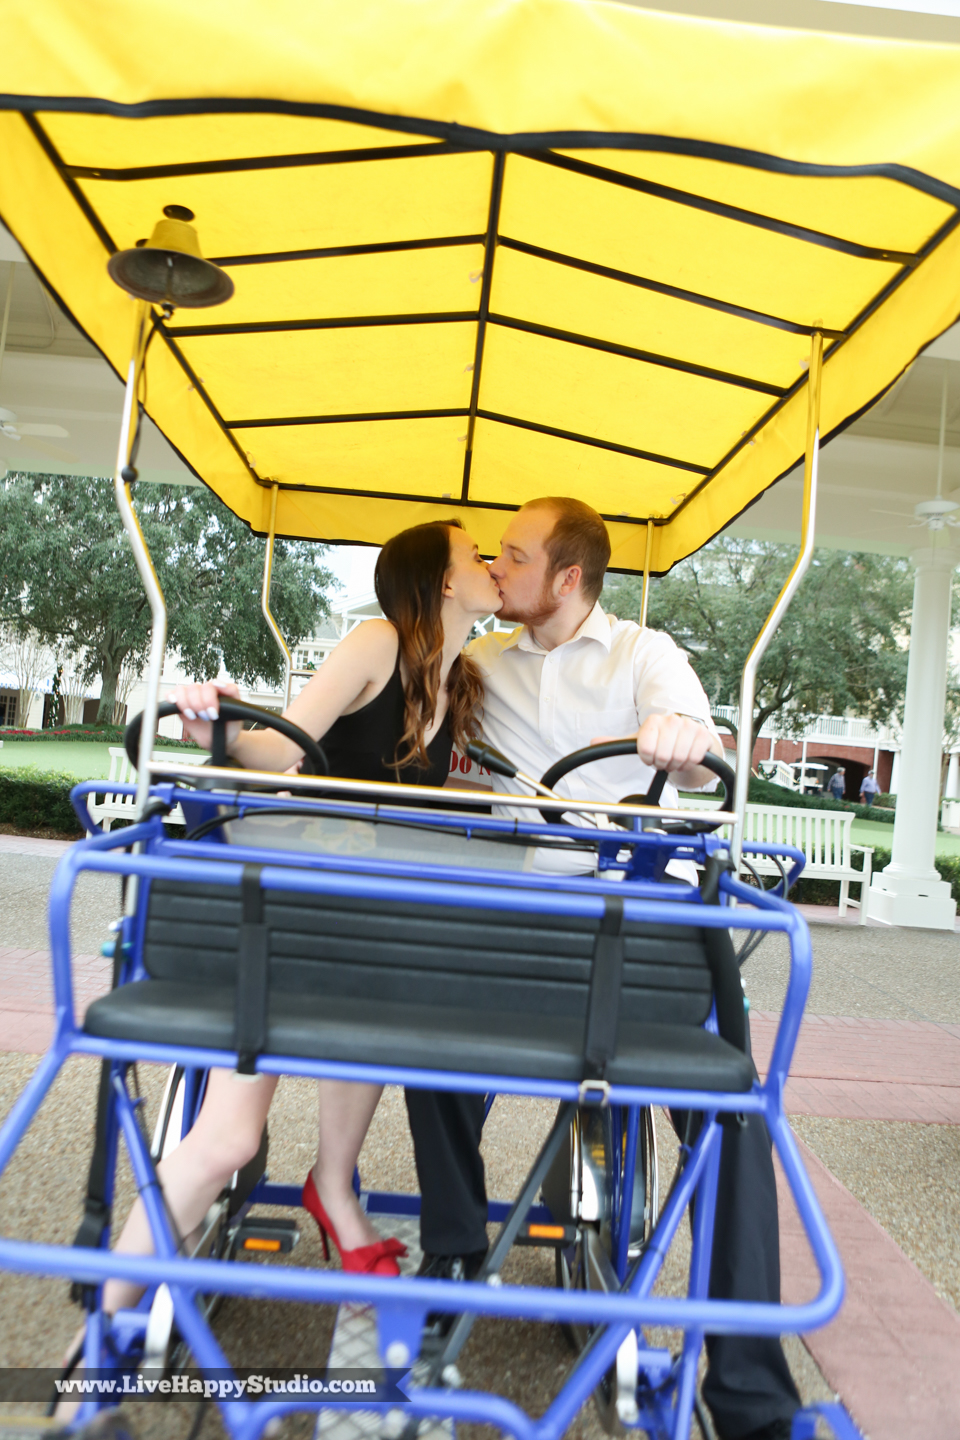 engagement-photographer-orlando-disney-photography-live-happy-studio-13.jpg